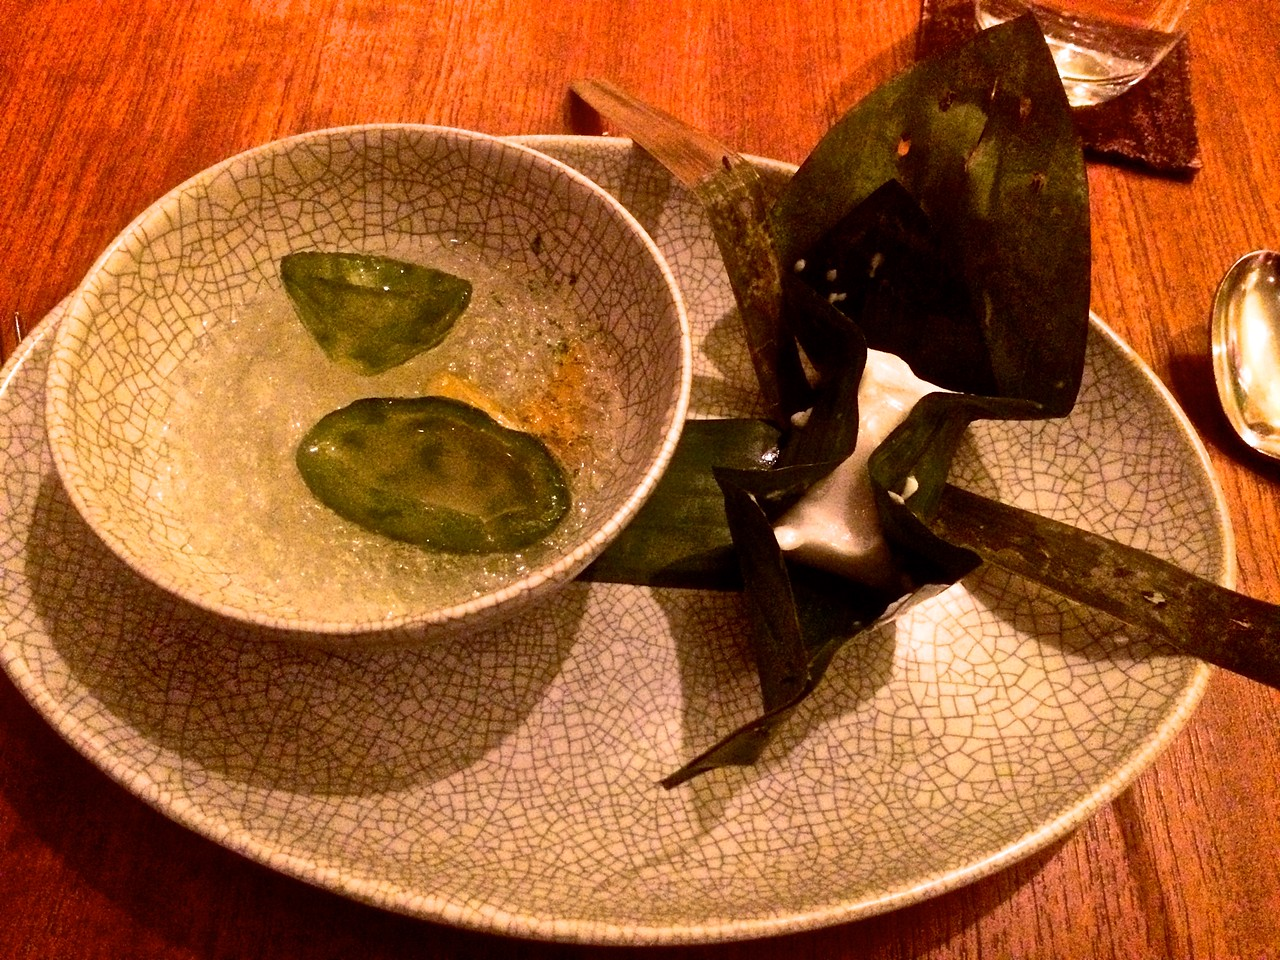 kaffir lime in perfumed syrup with candied coconut